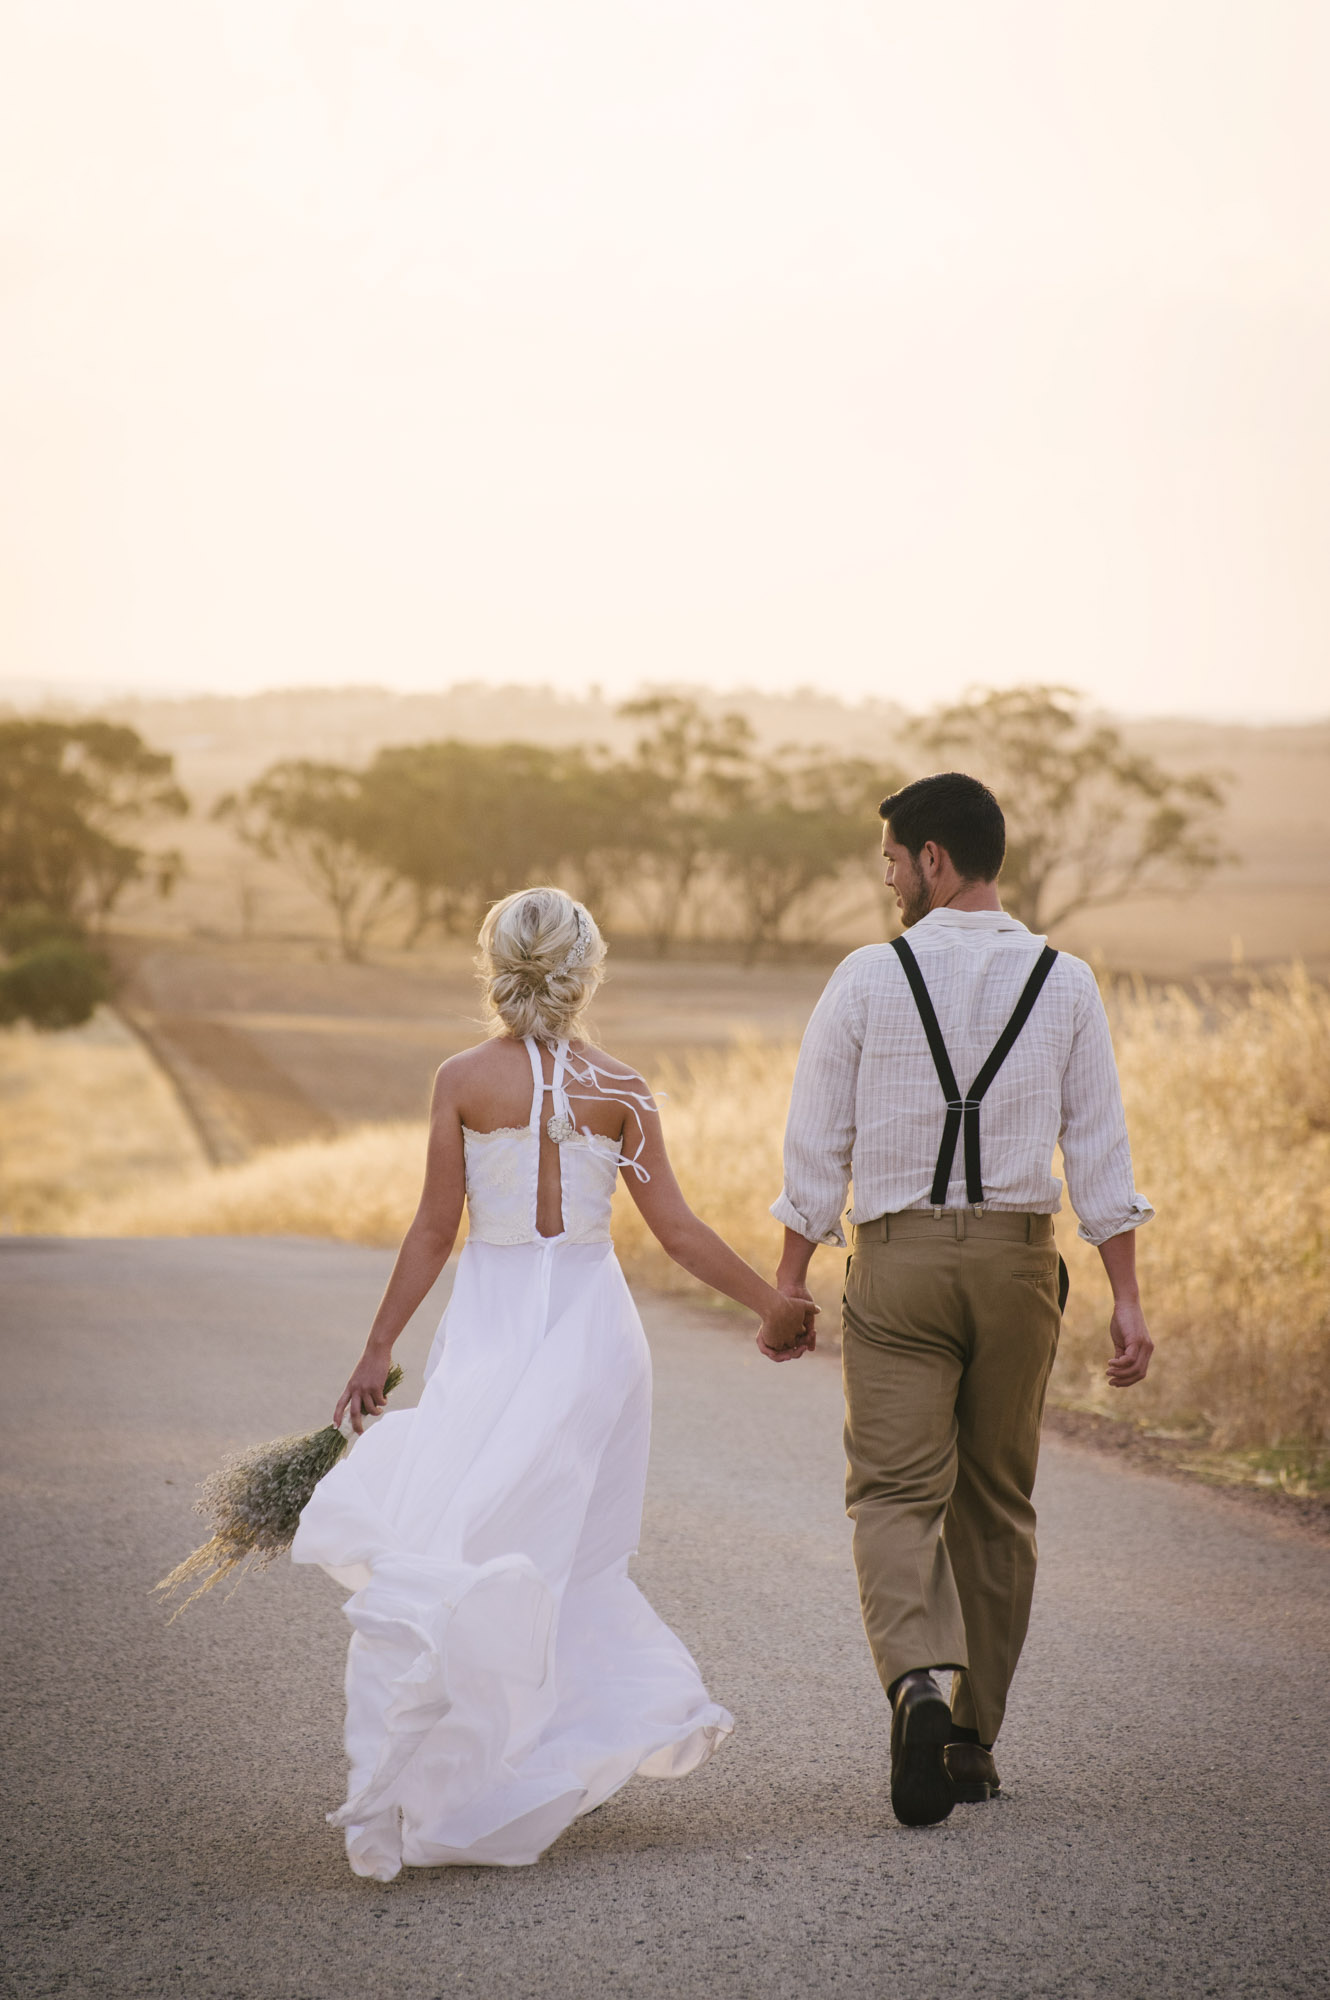 Angie-Roe-Photography-Wedding-Perth-Northam-Wheatbelt-Country-Rural (134).jpg